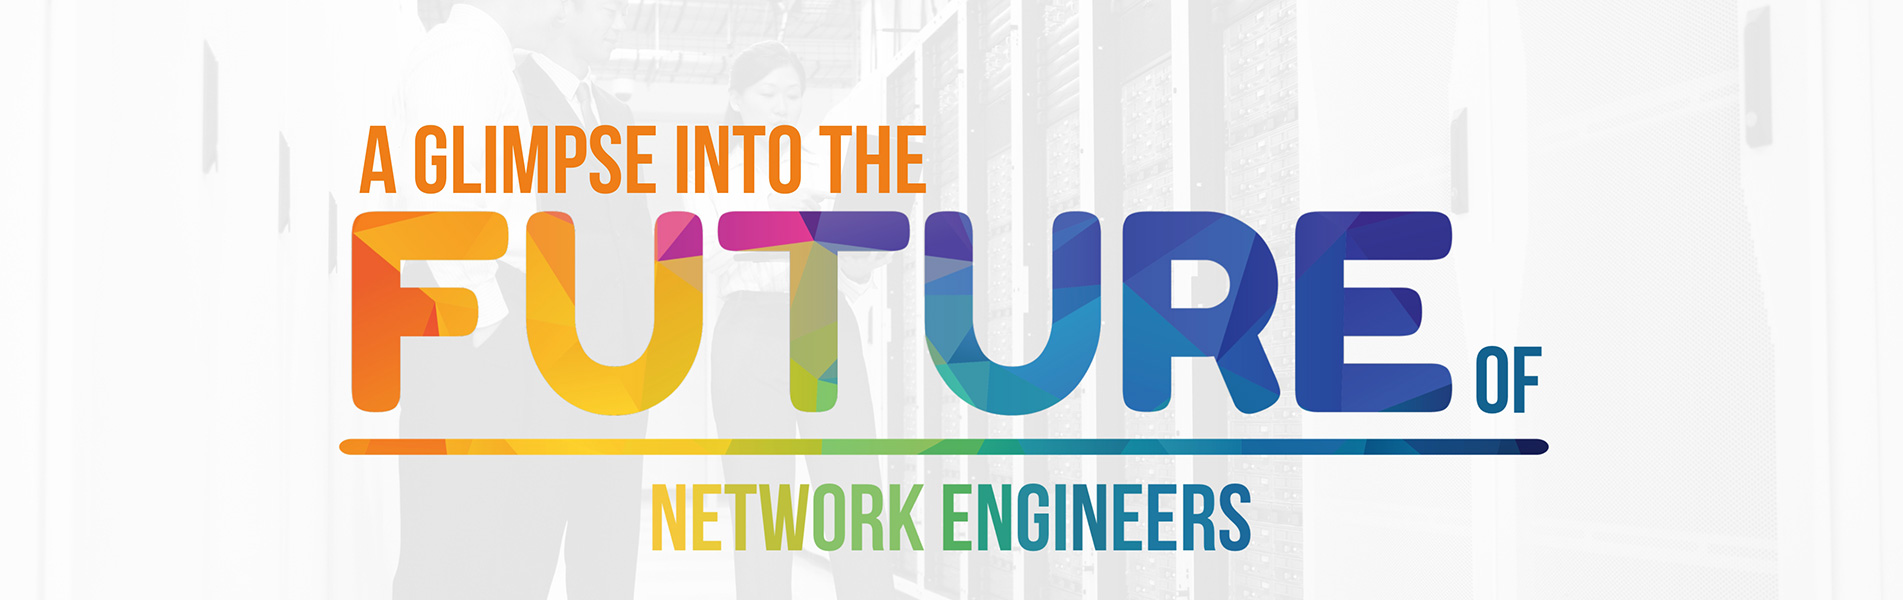 A-glimpse-into-the-future-of-network-engineers